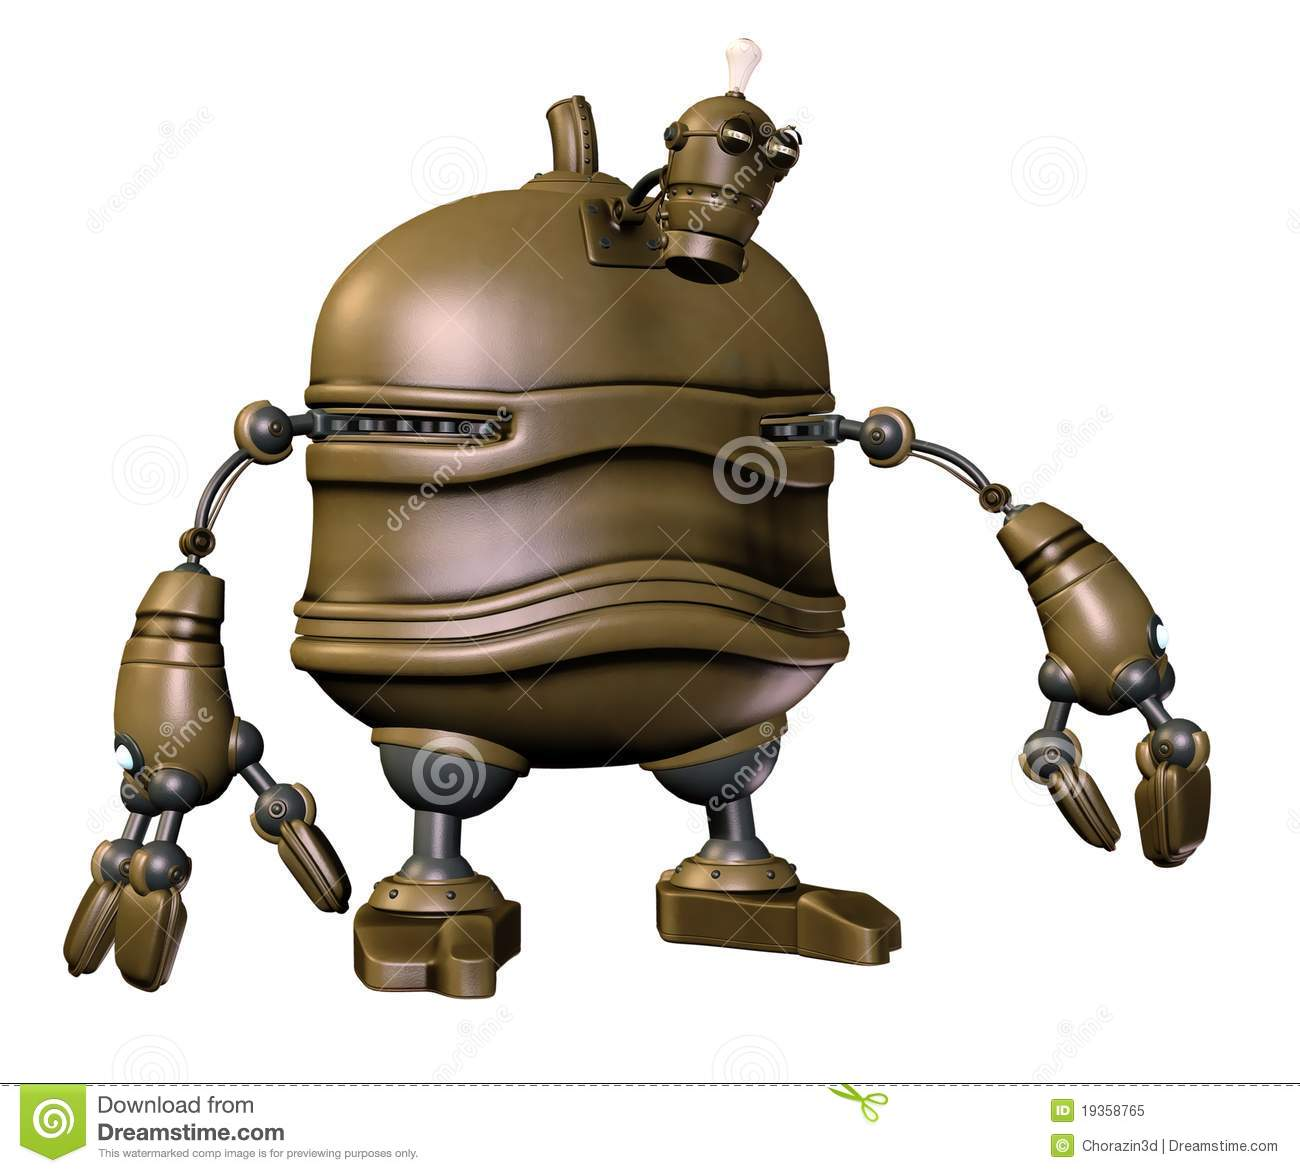 Steampunk robot 3 stock illustration. Illustration of ...